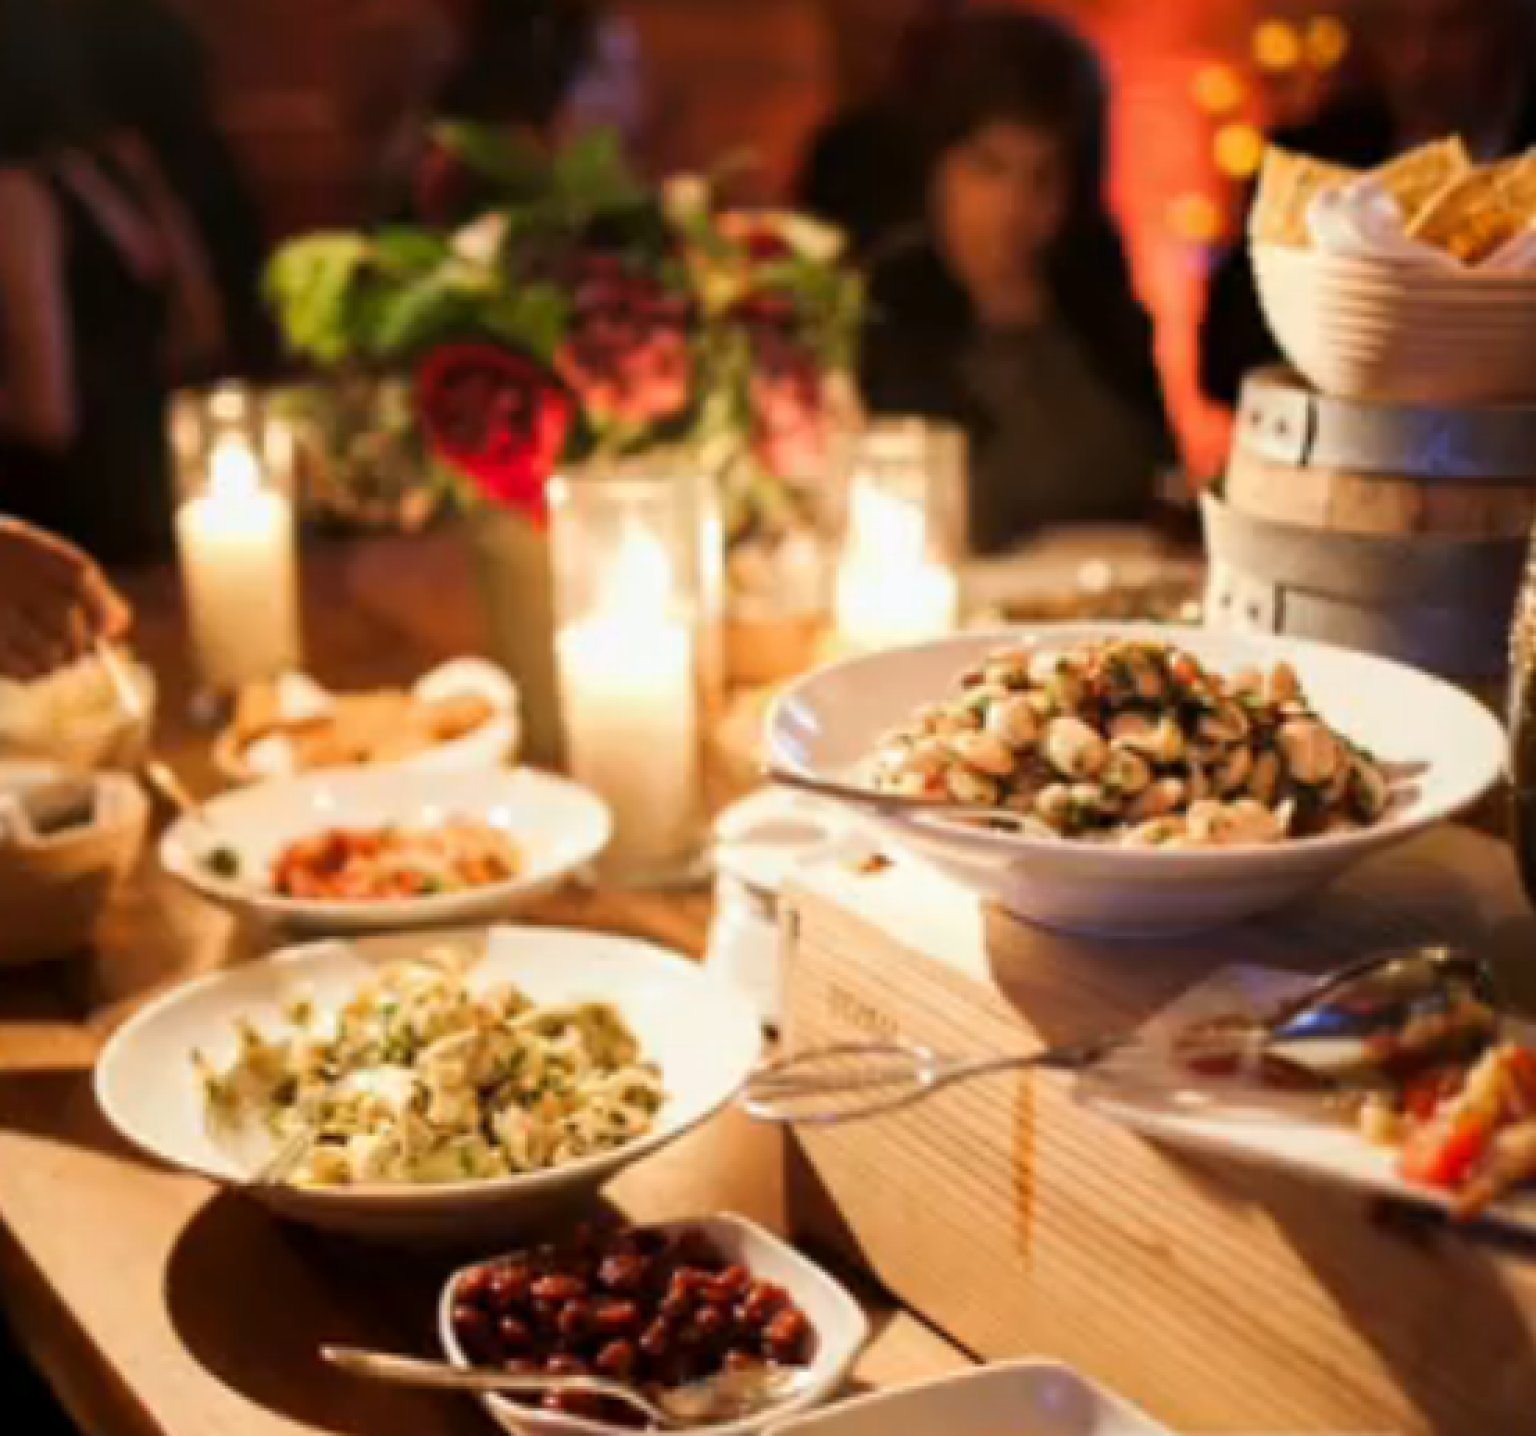 Wedding Food Trends For Fall 2013 (VIDEO)